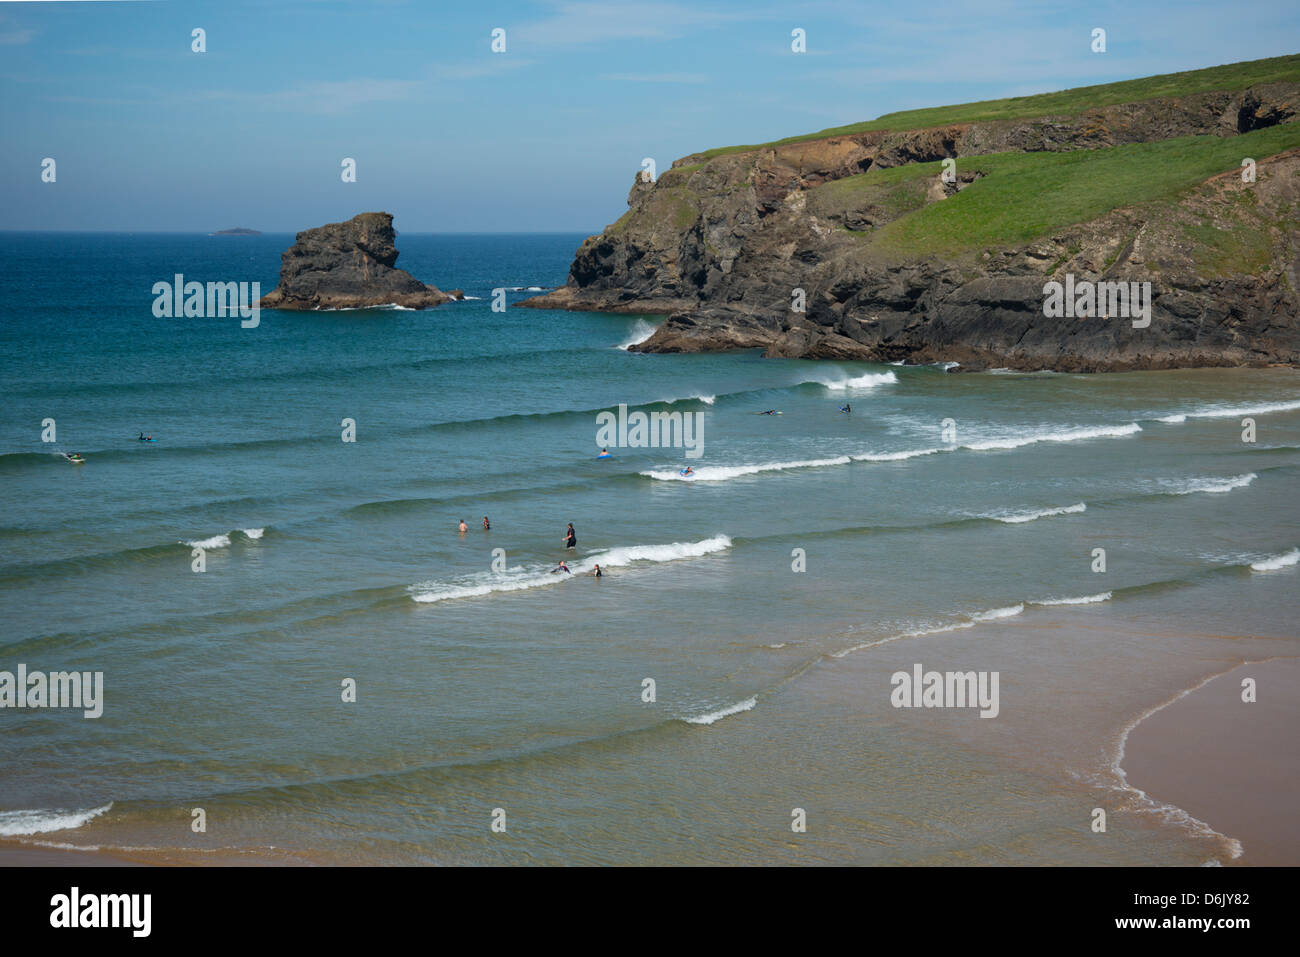 Swimmers in the water at Porthcothan Bay, Cornwall, England, United Kingdom, Europe - Stock Image